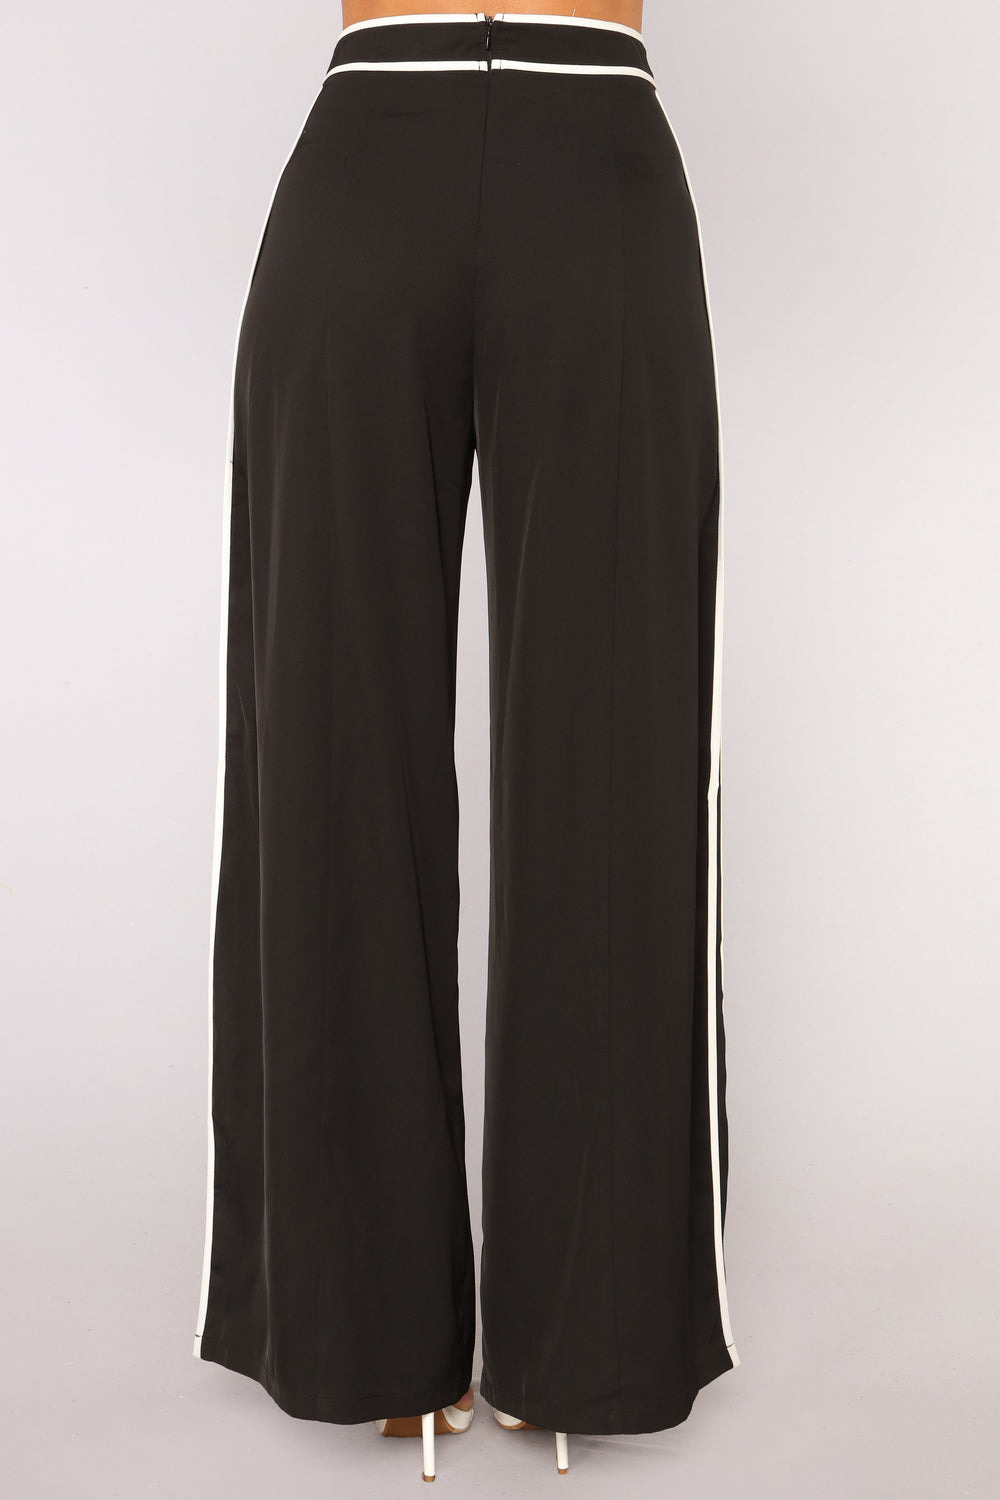 Catalina Wide Slit Pants - Black White